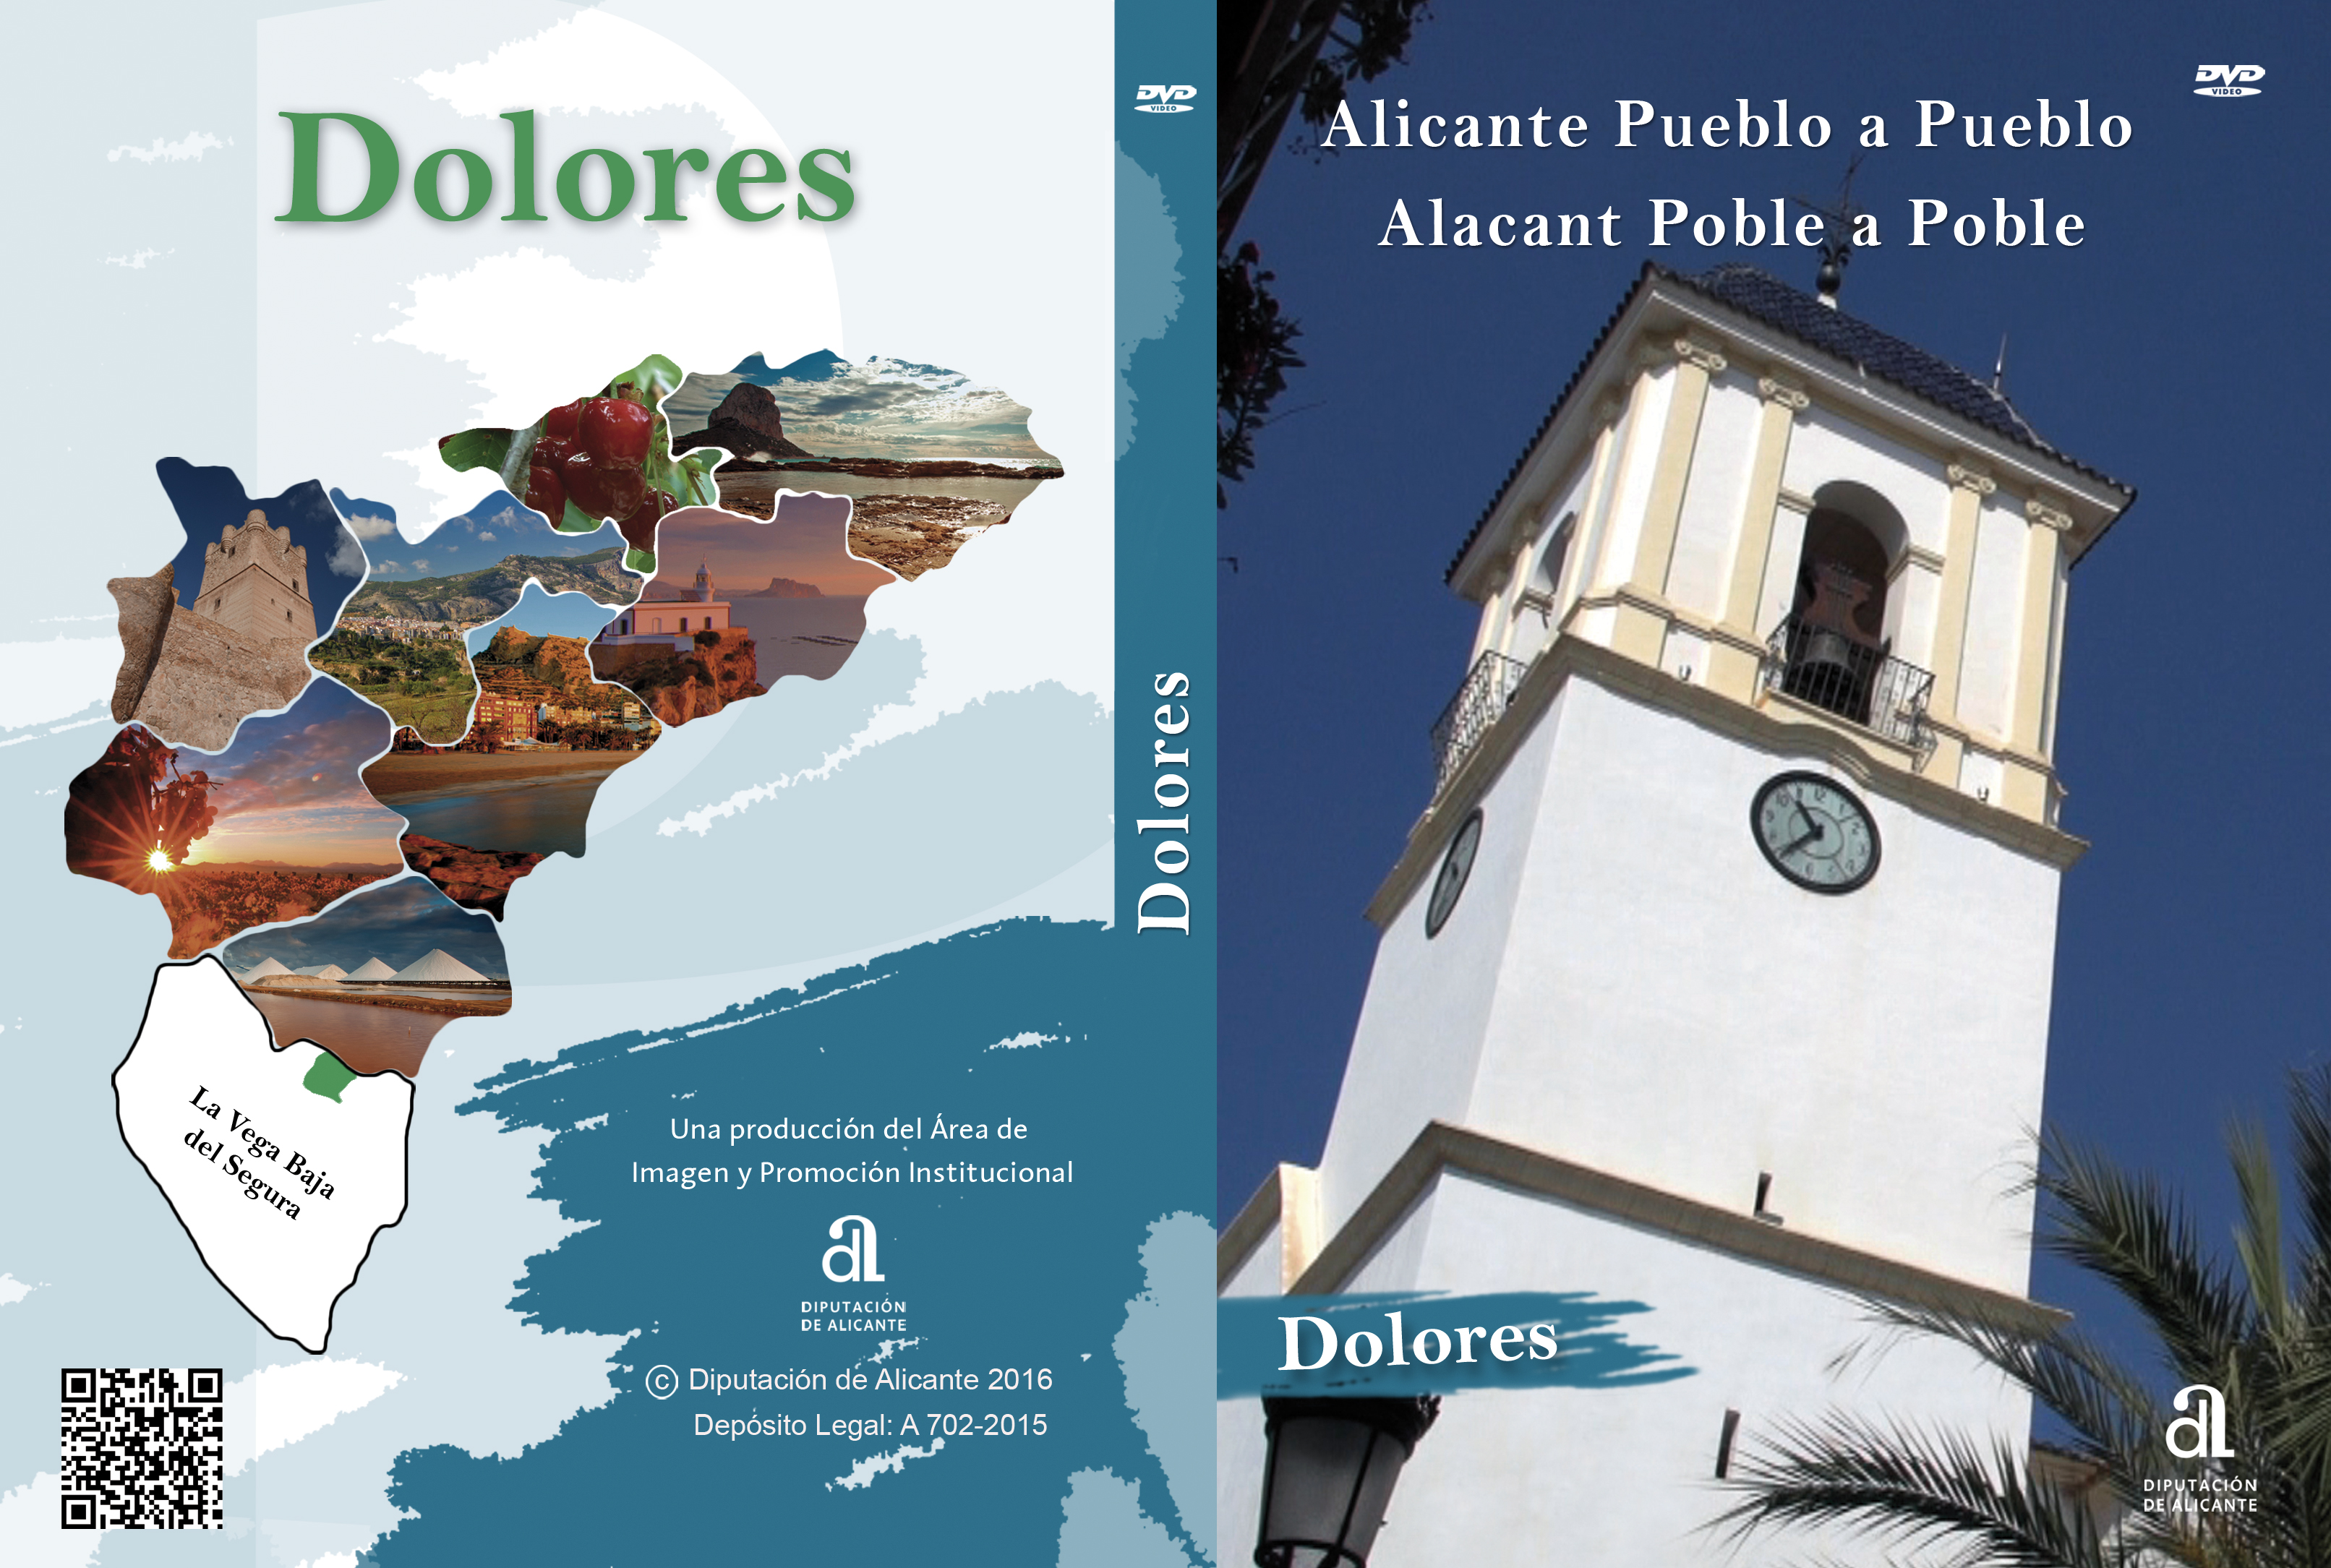 Dolores. Alacant, poble a poble